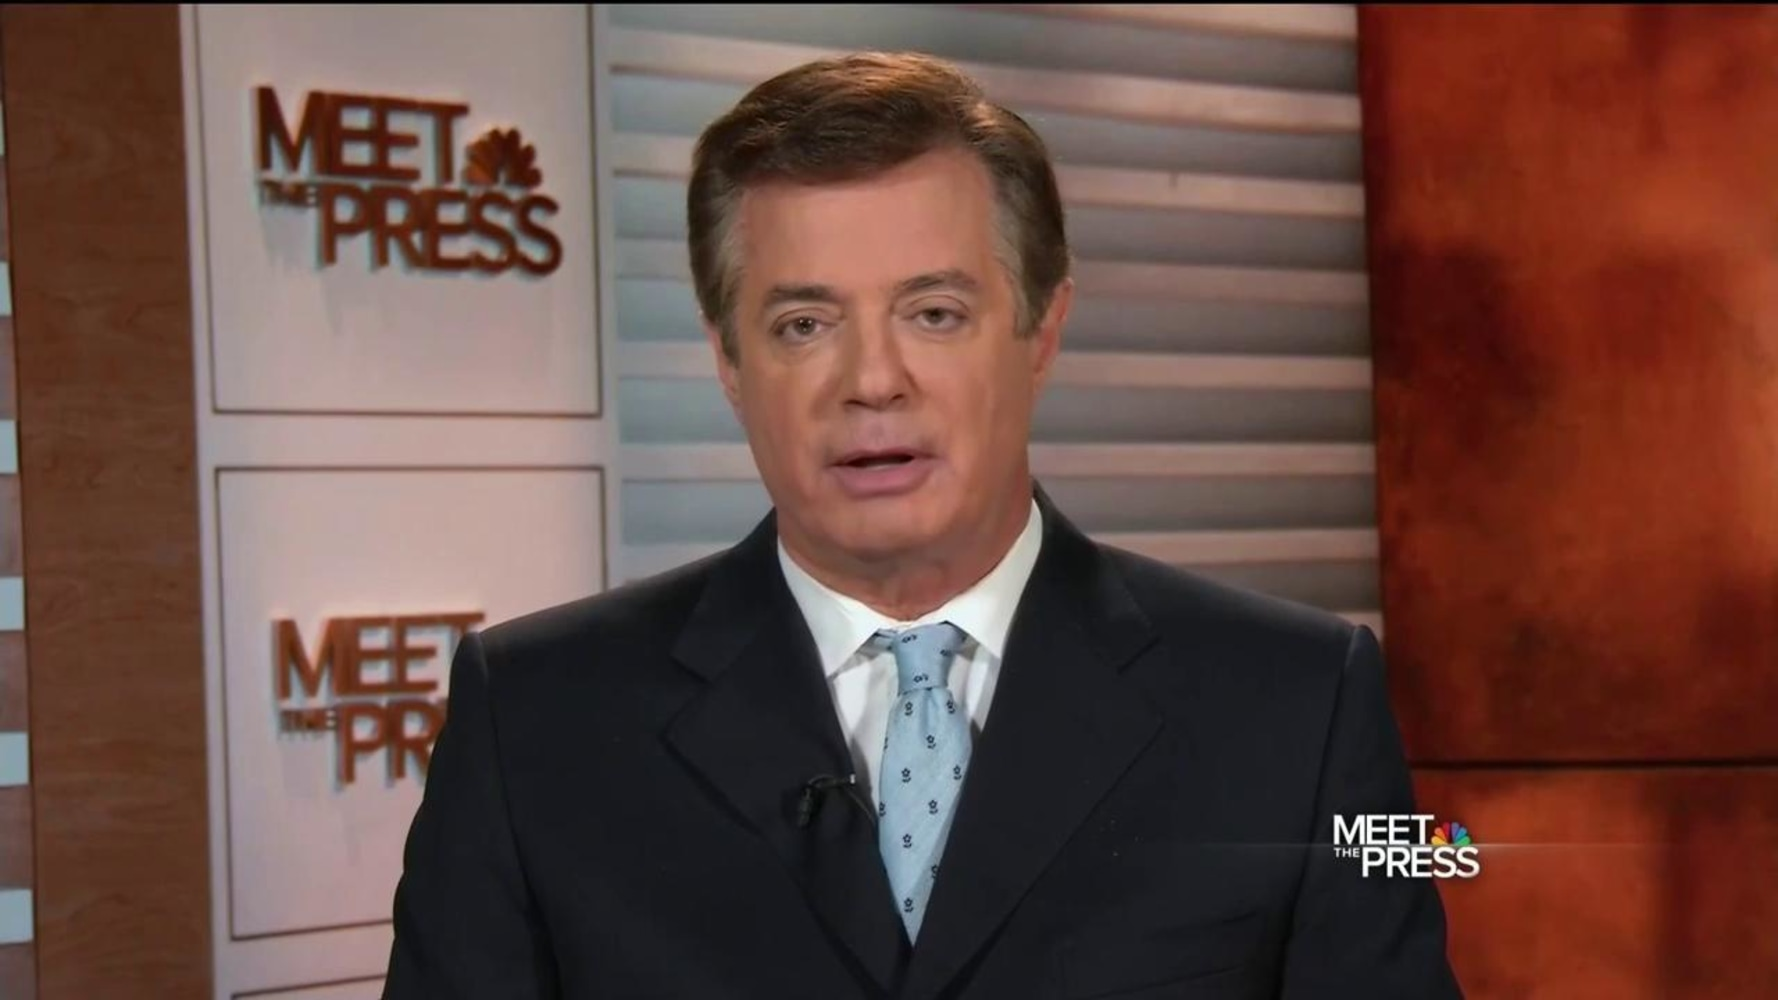 Trump's embattled campaign chairman Paul Manafort resigns